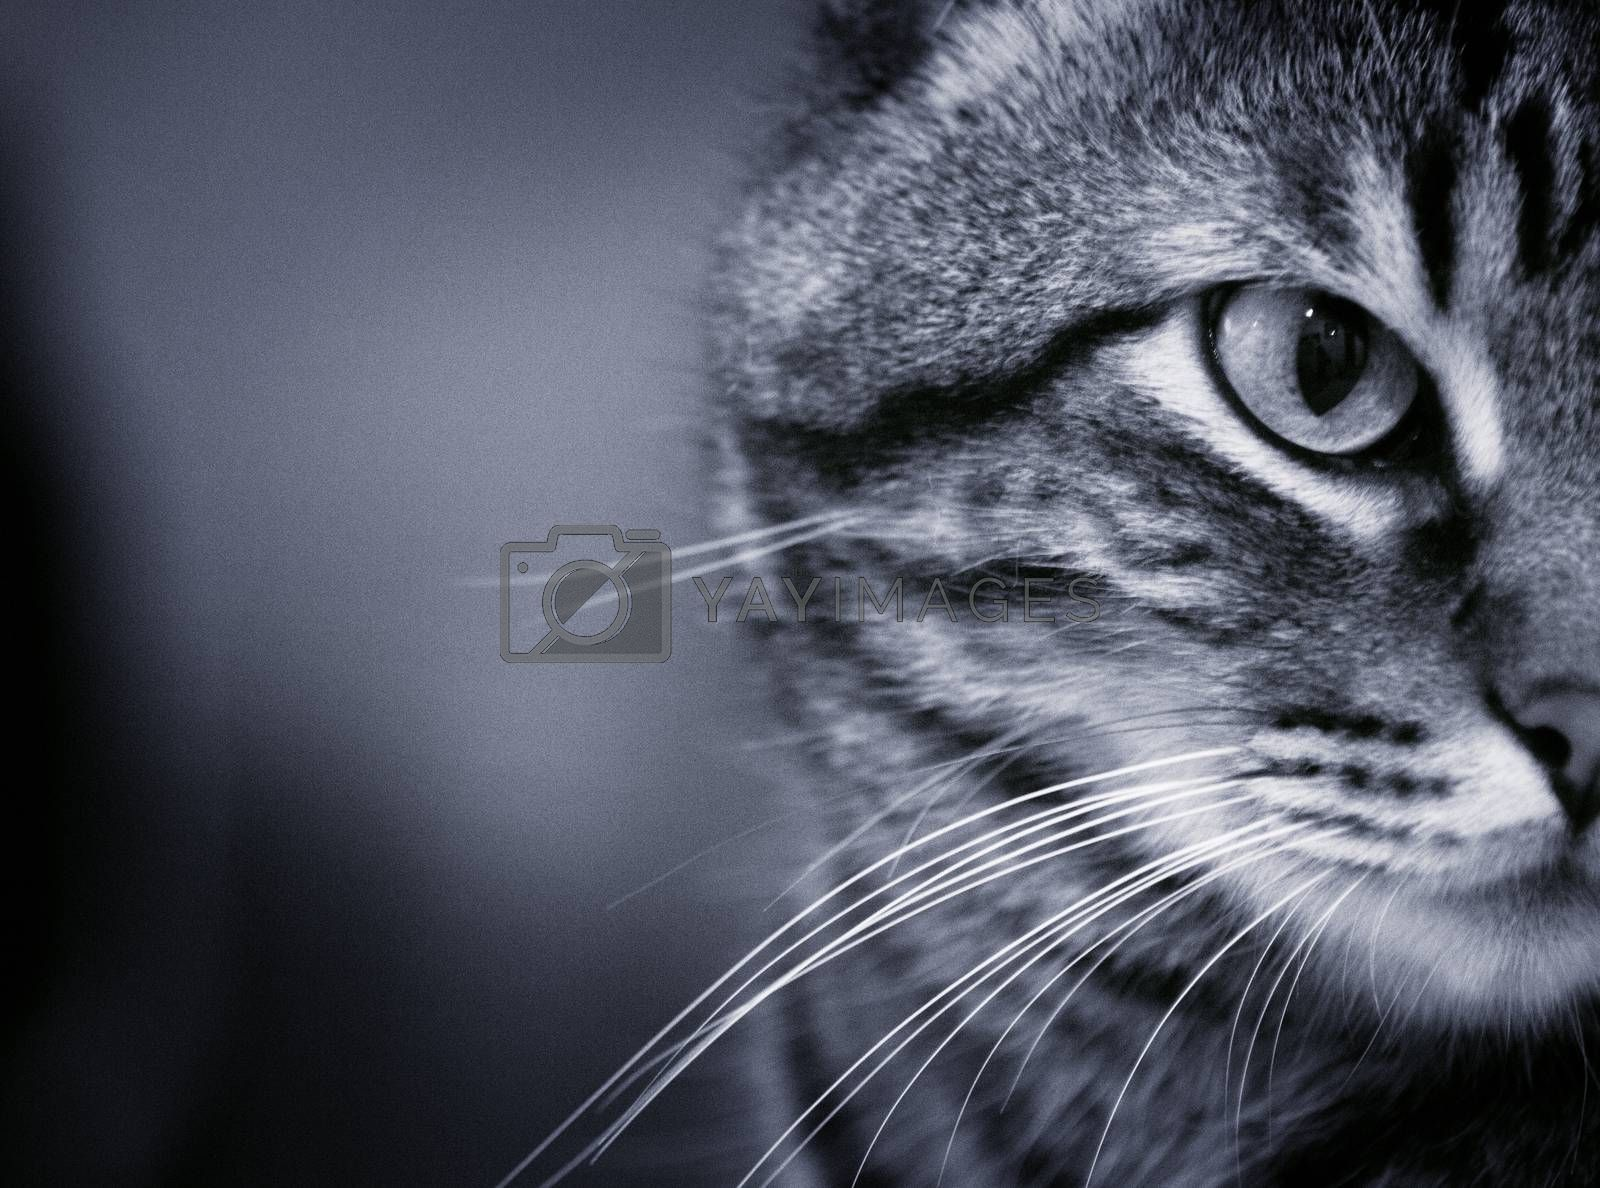 Portrait of cat in black and white.